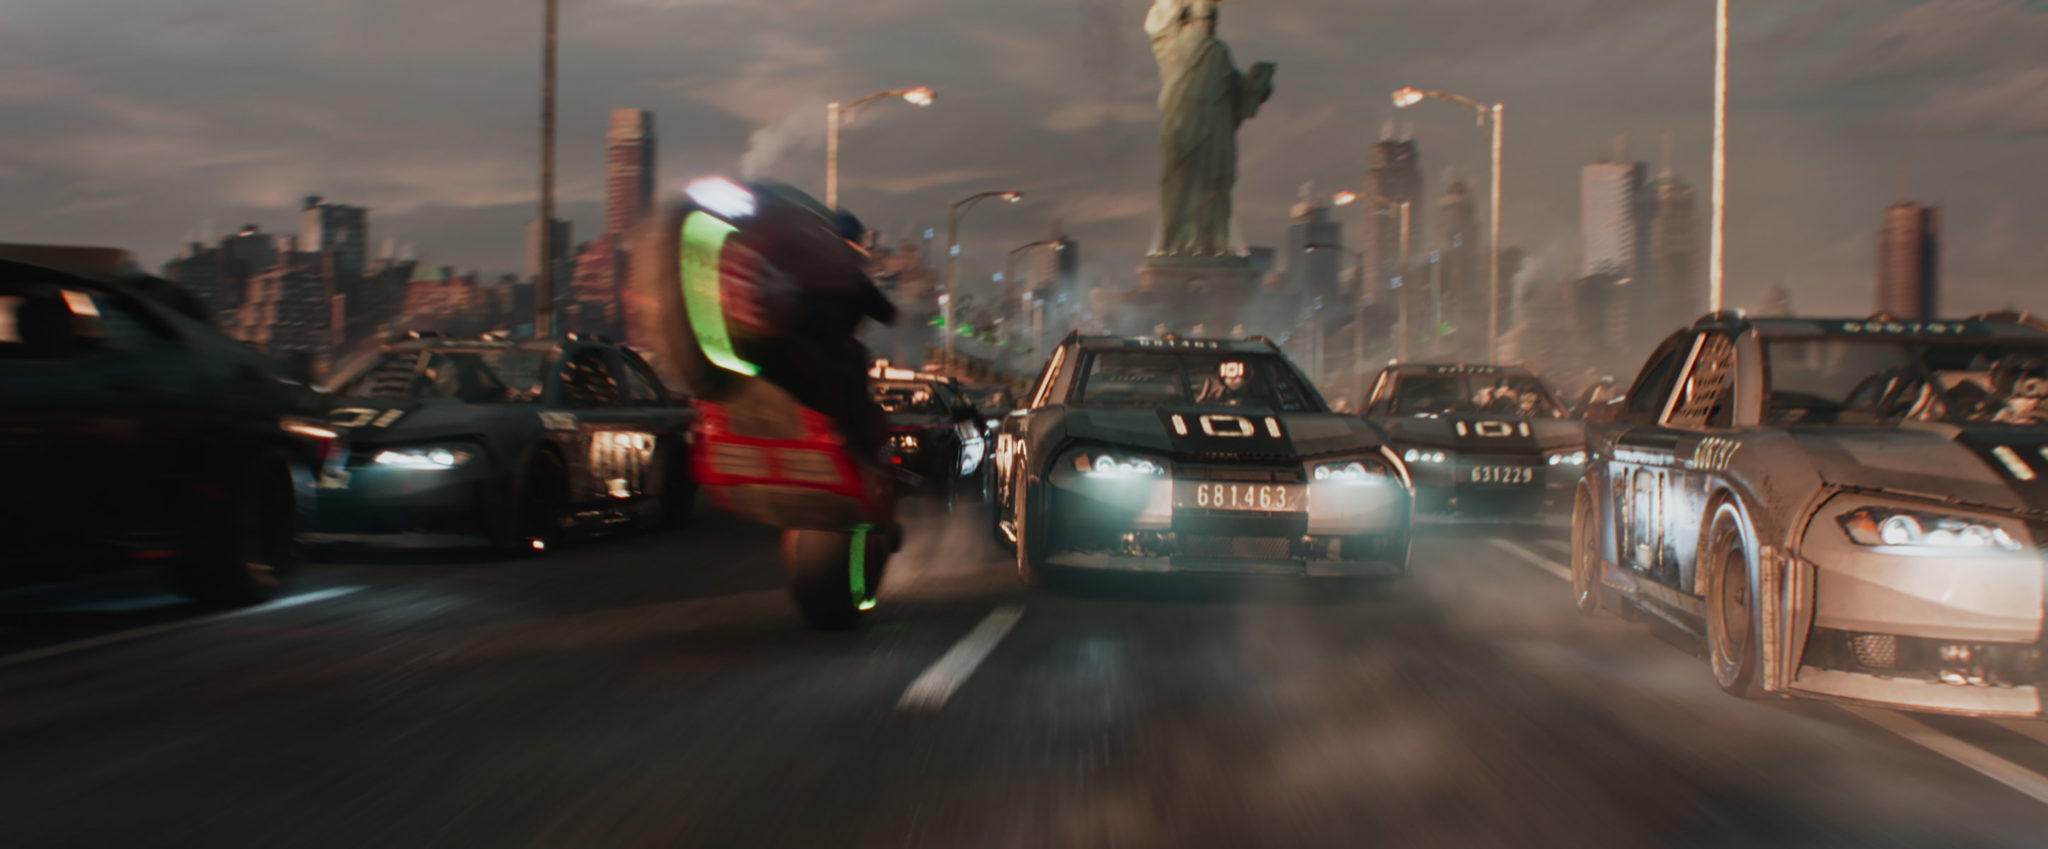 <i>Ready Player One</i>'s New York race